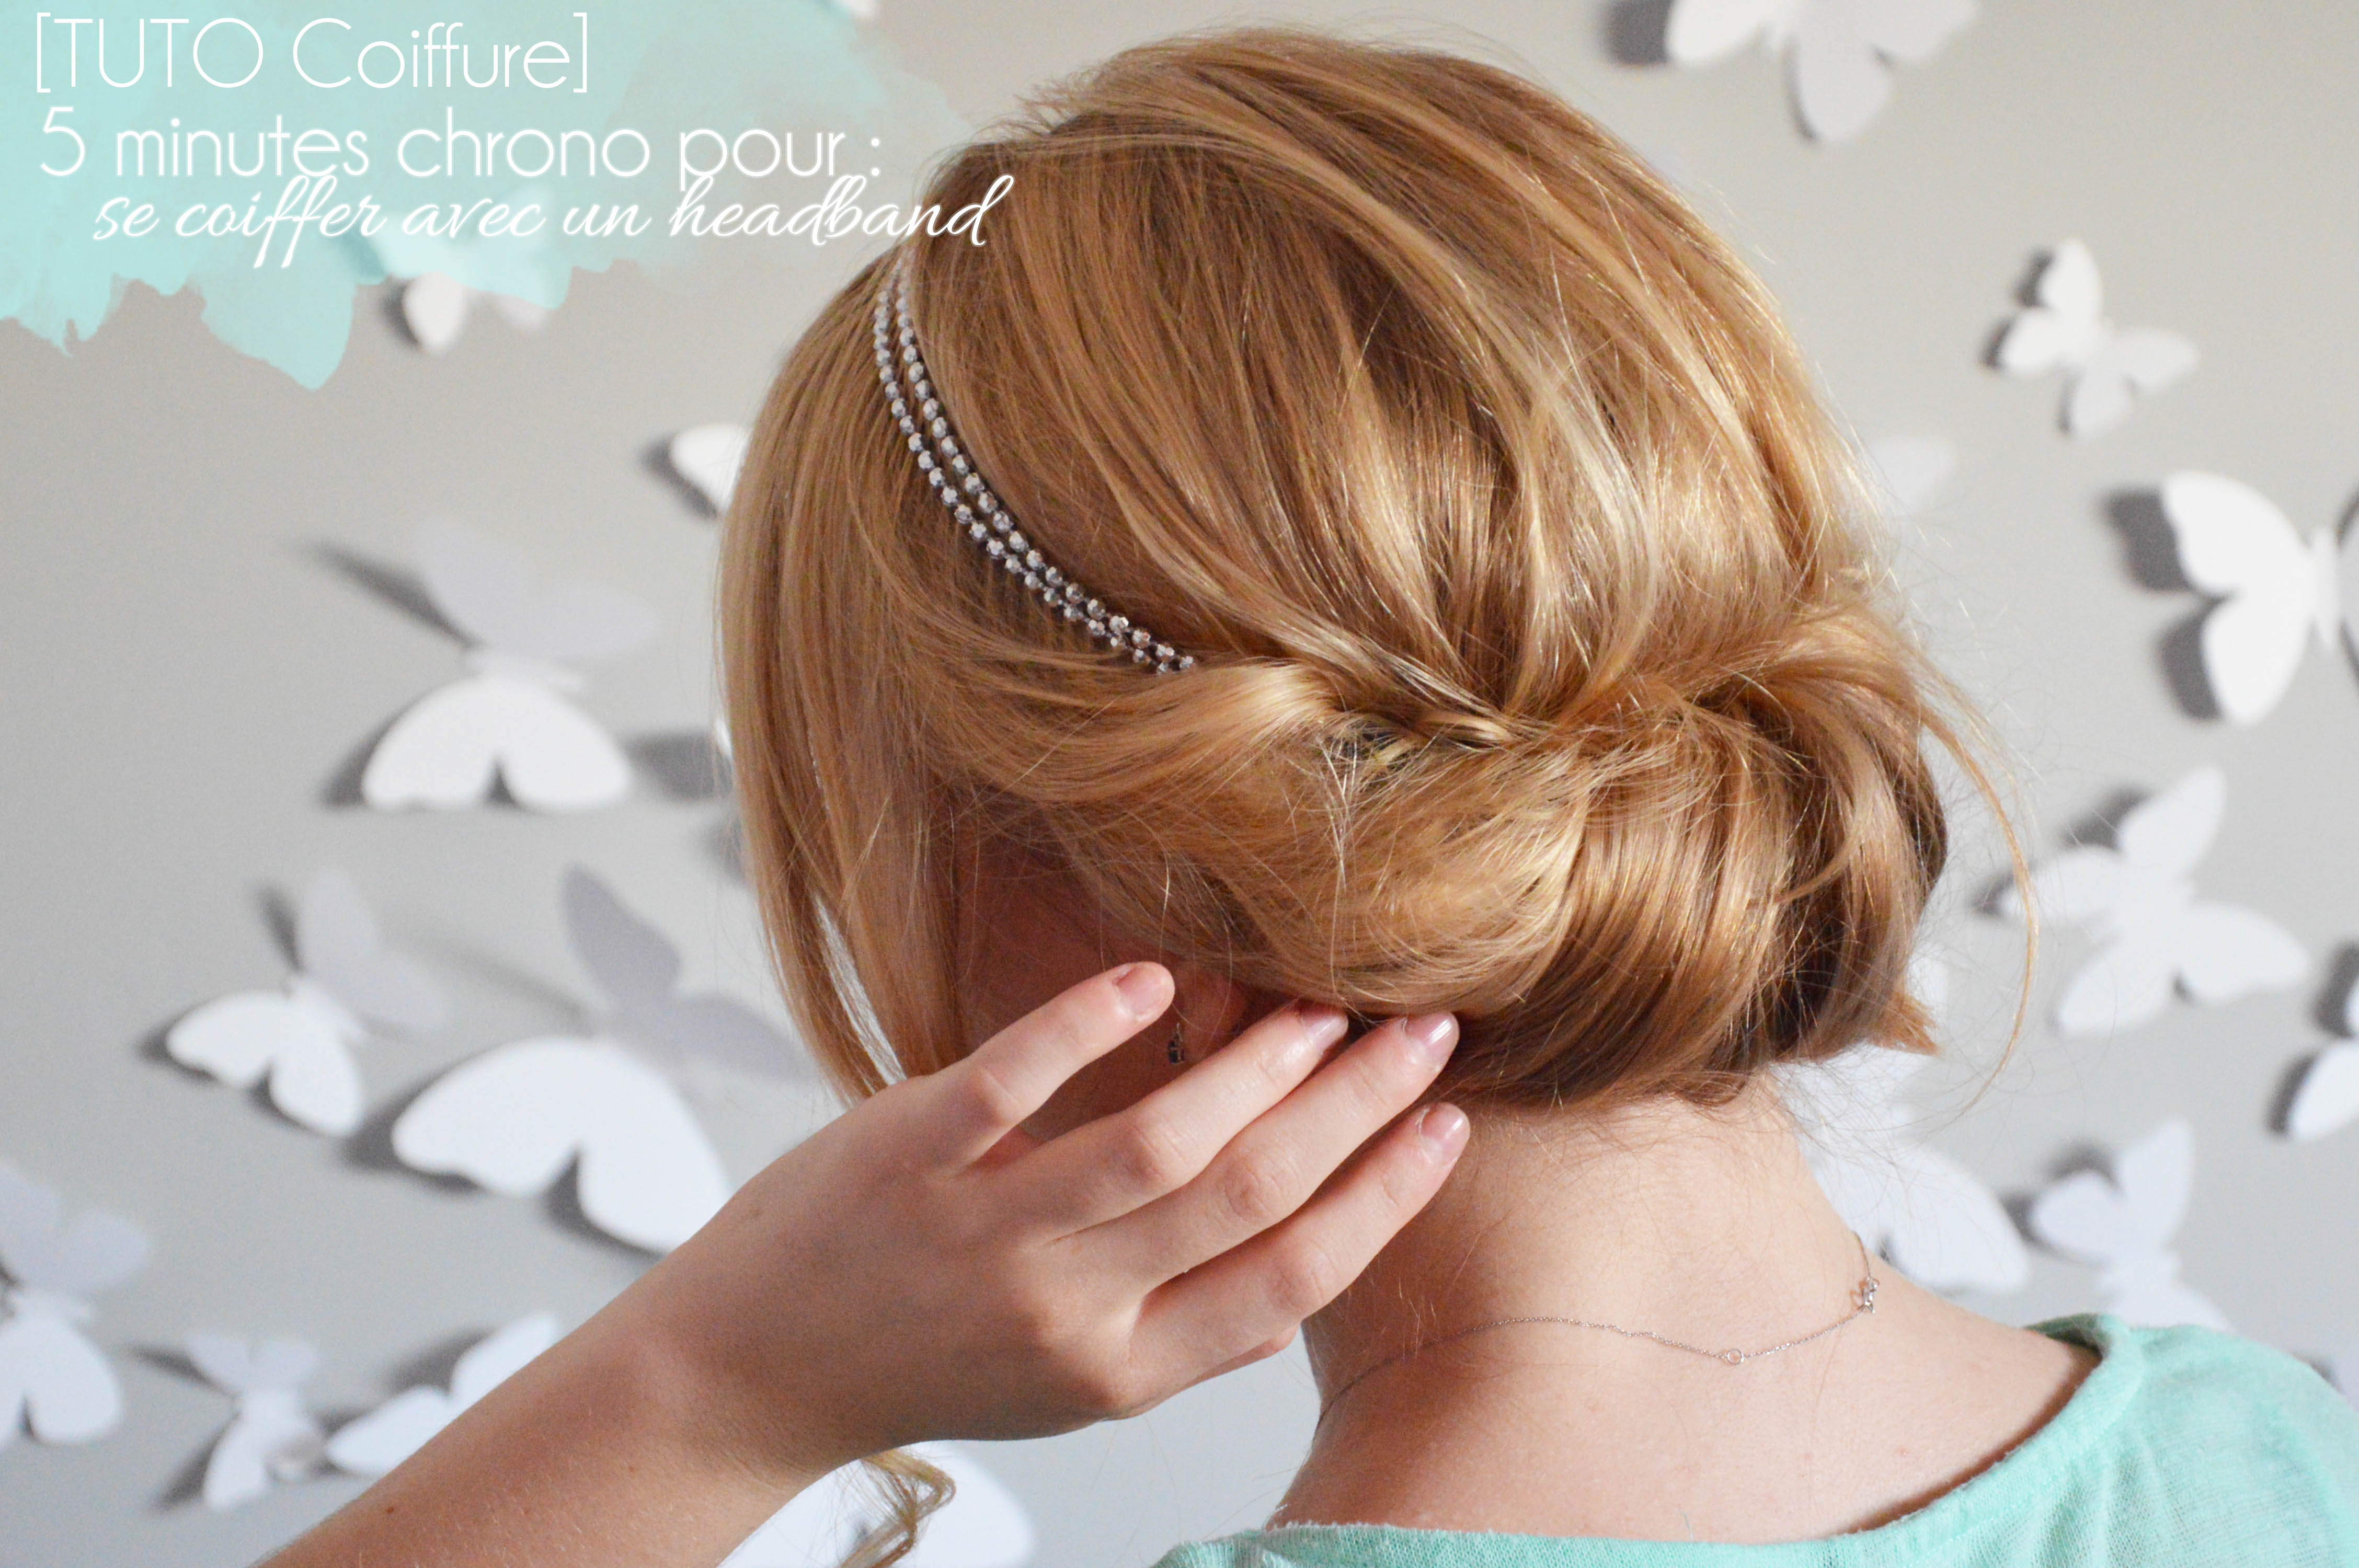 Coiffure Facile Headband 301 Moved Permanently